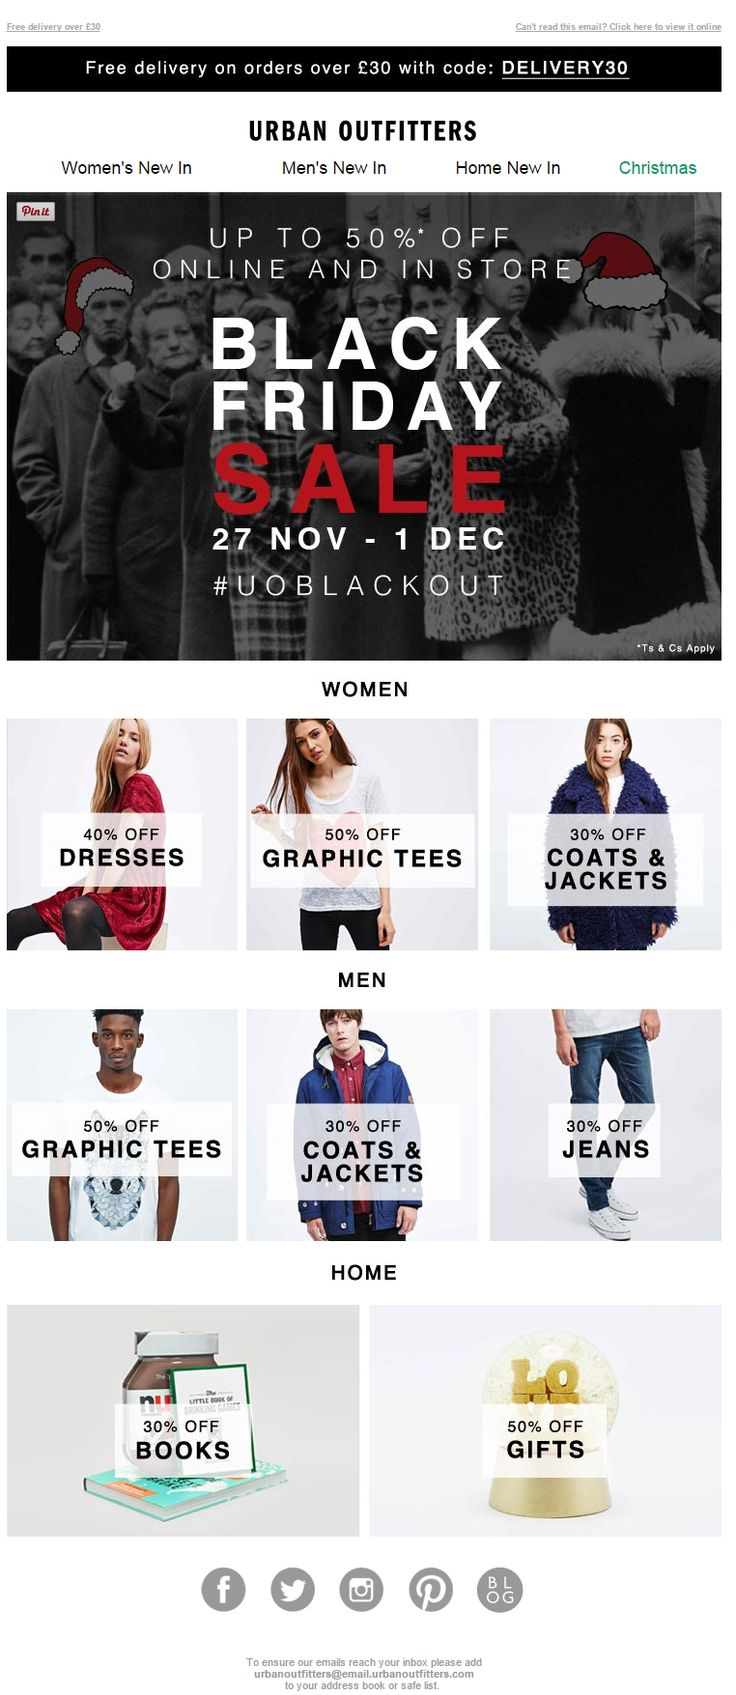 Black Friday Email Marketing Inspiration 2014 / Urban Outfitters